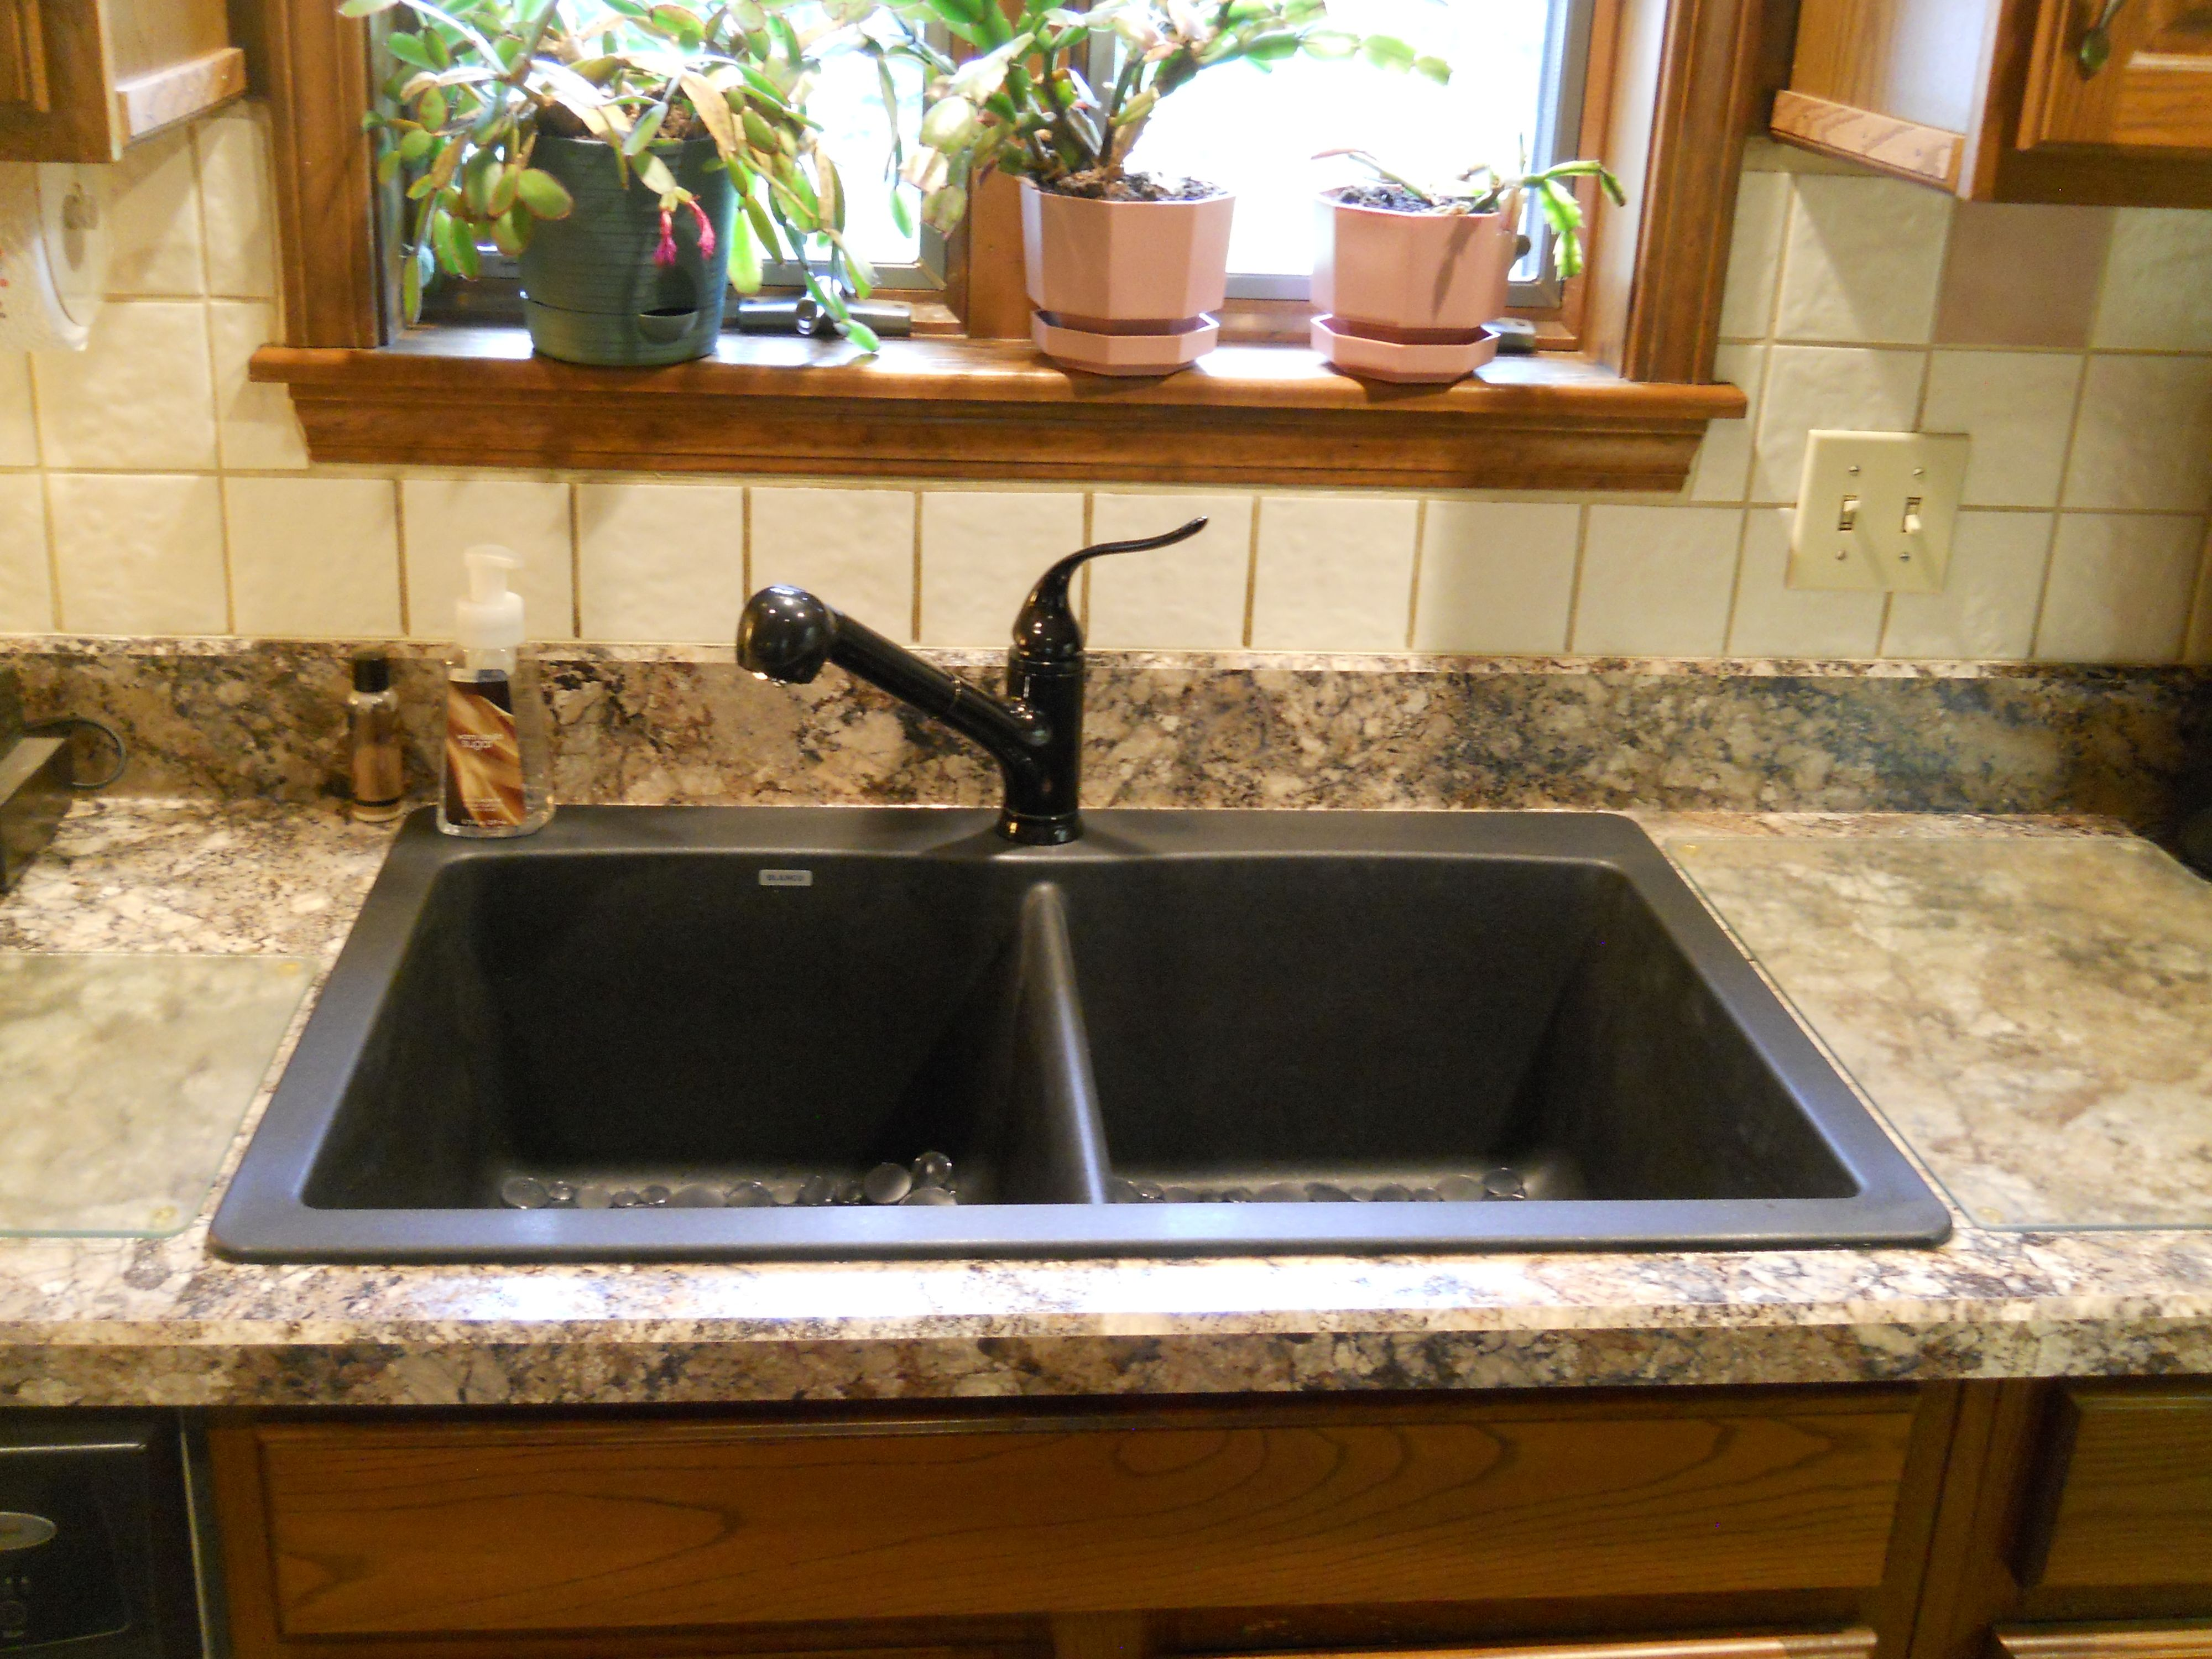 Wilsonart Winter Carnival Laminate, With Blanco Diamond Anthracite Sink And  Kohler Coralais Faucet